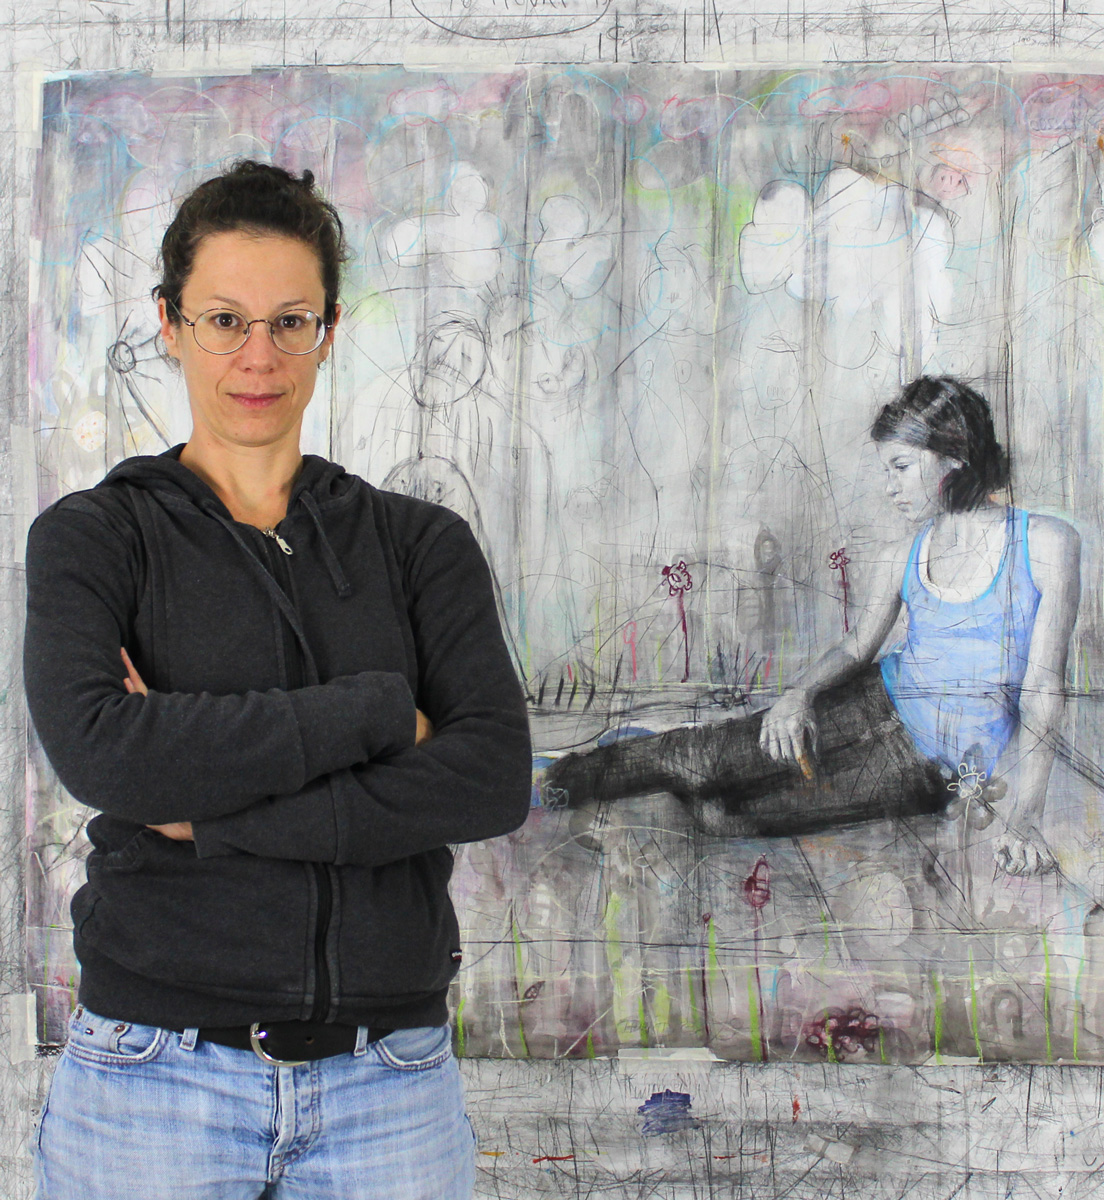 An image of the contemporary female artist Angelika Vaxevanidou